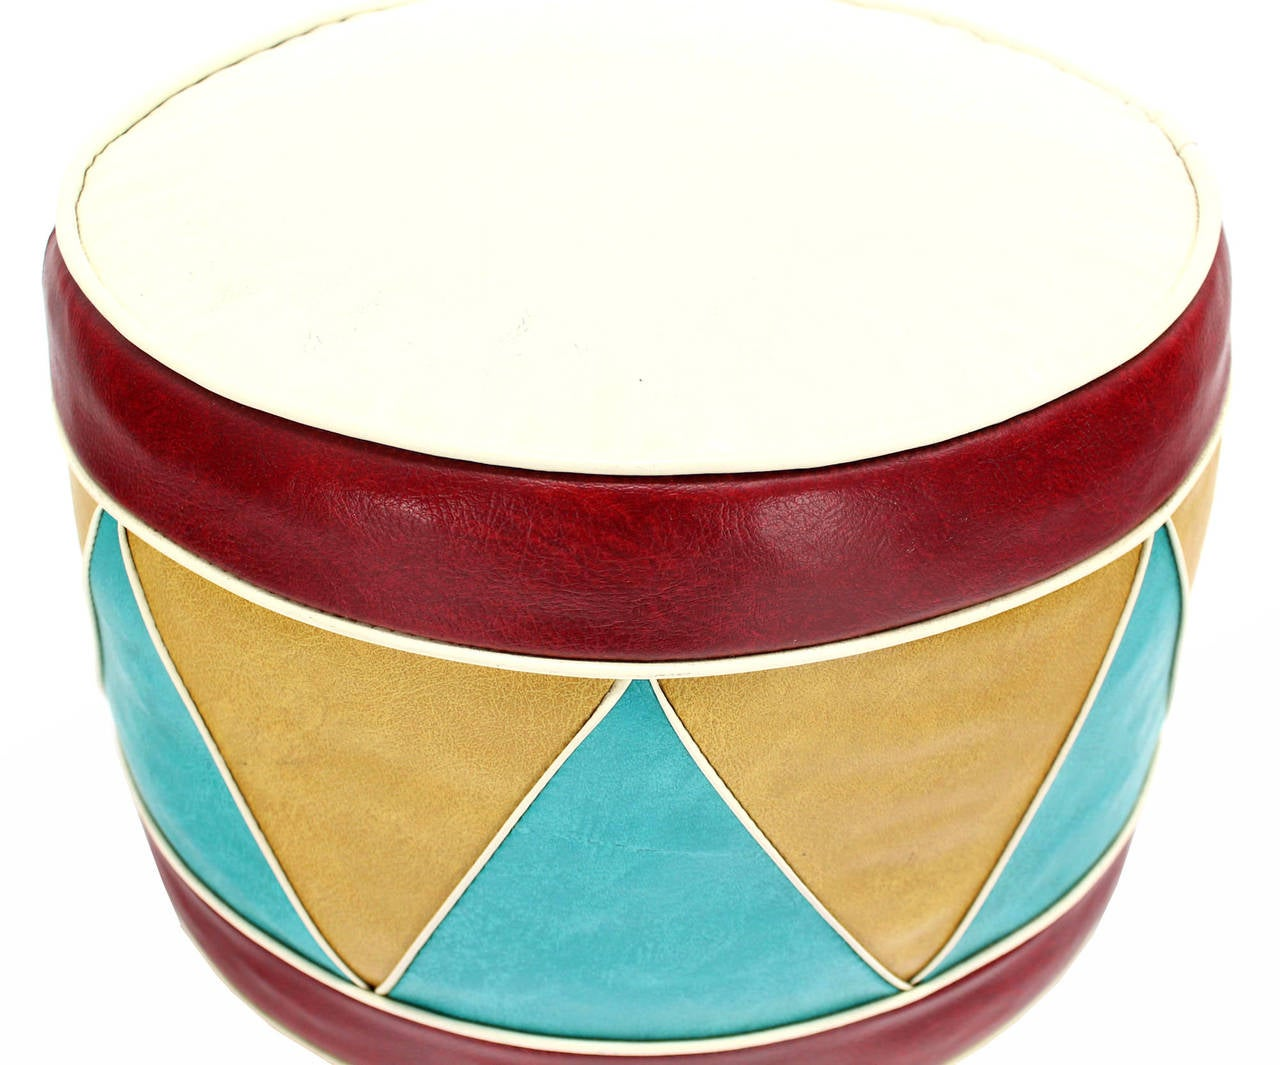 1960s Multicolored Hassock Foot Stool Or Ottoman At 1stdibs